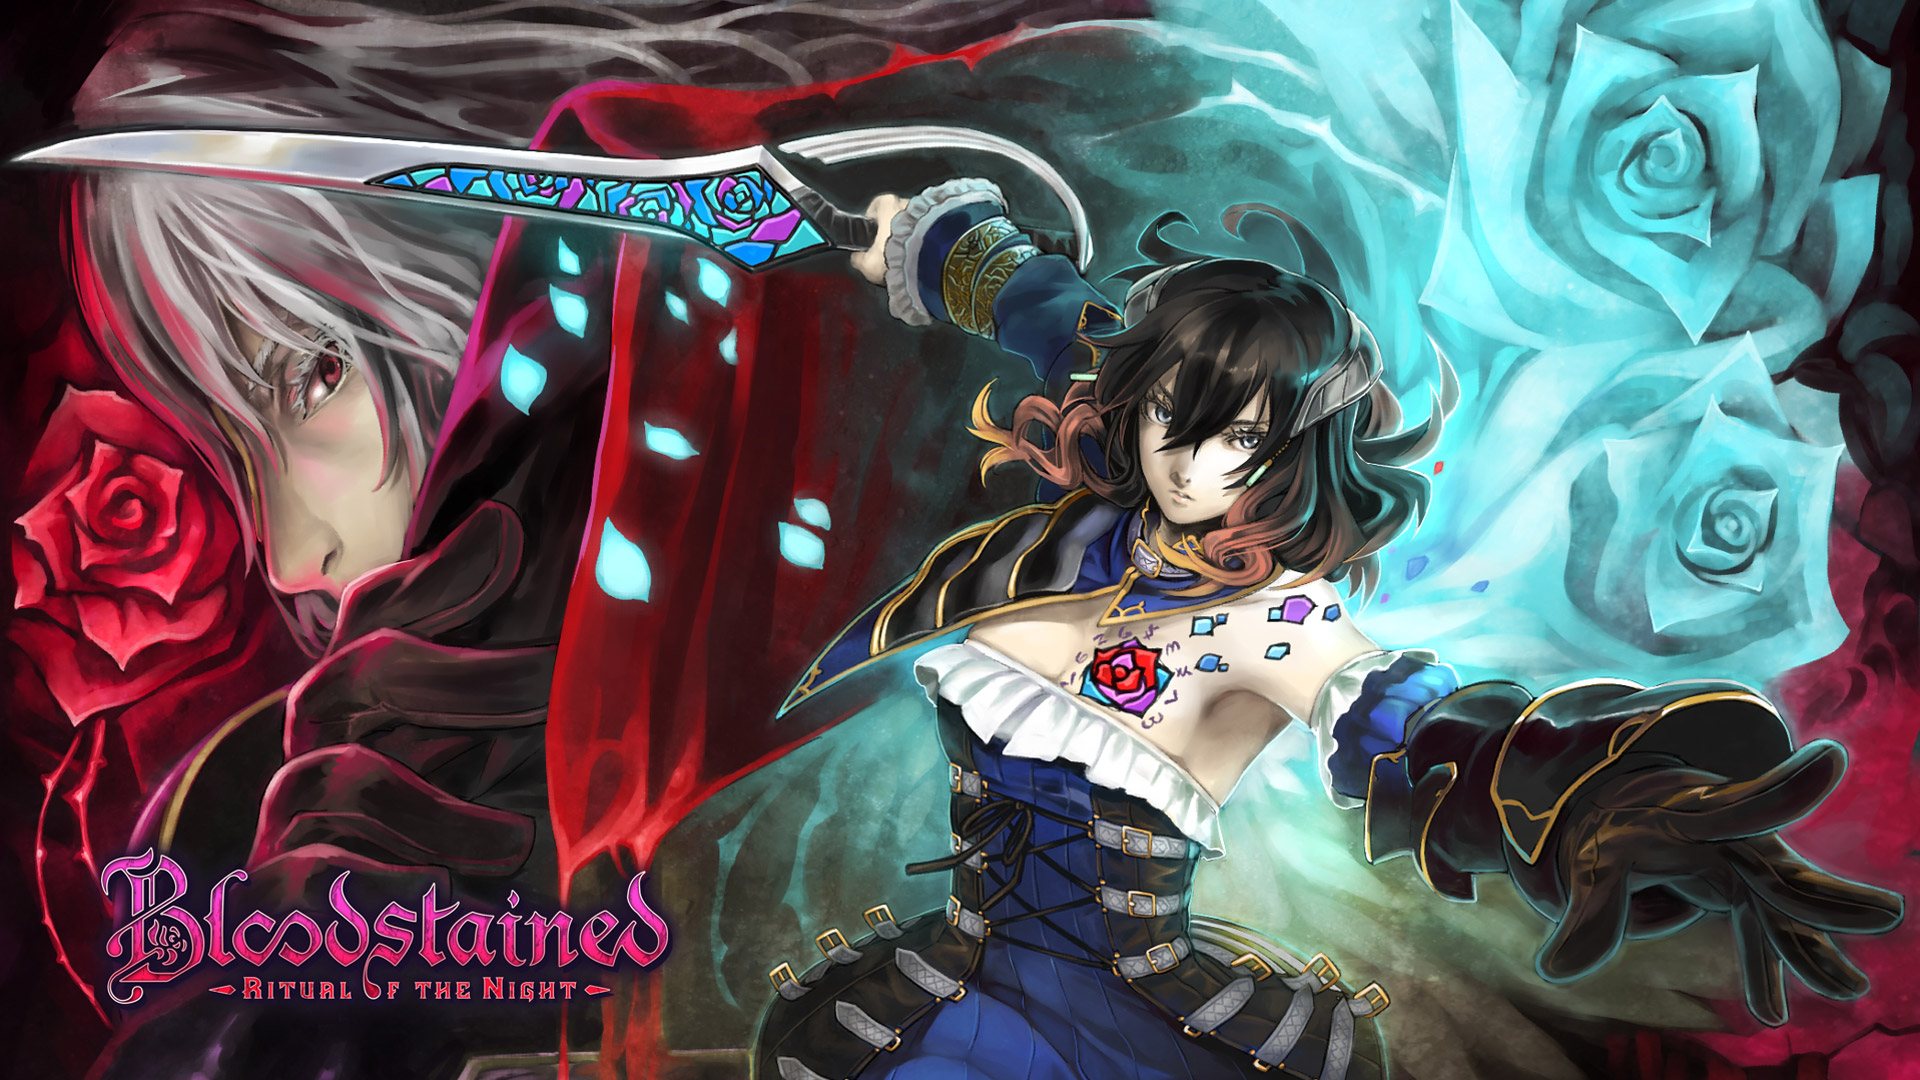 Bloodstained: Ritual of the Night Wallpaper in 1920x1080